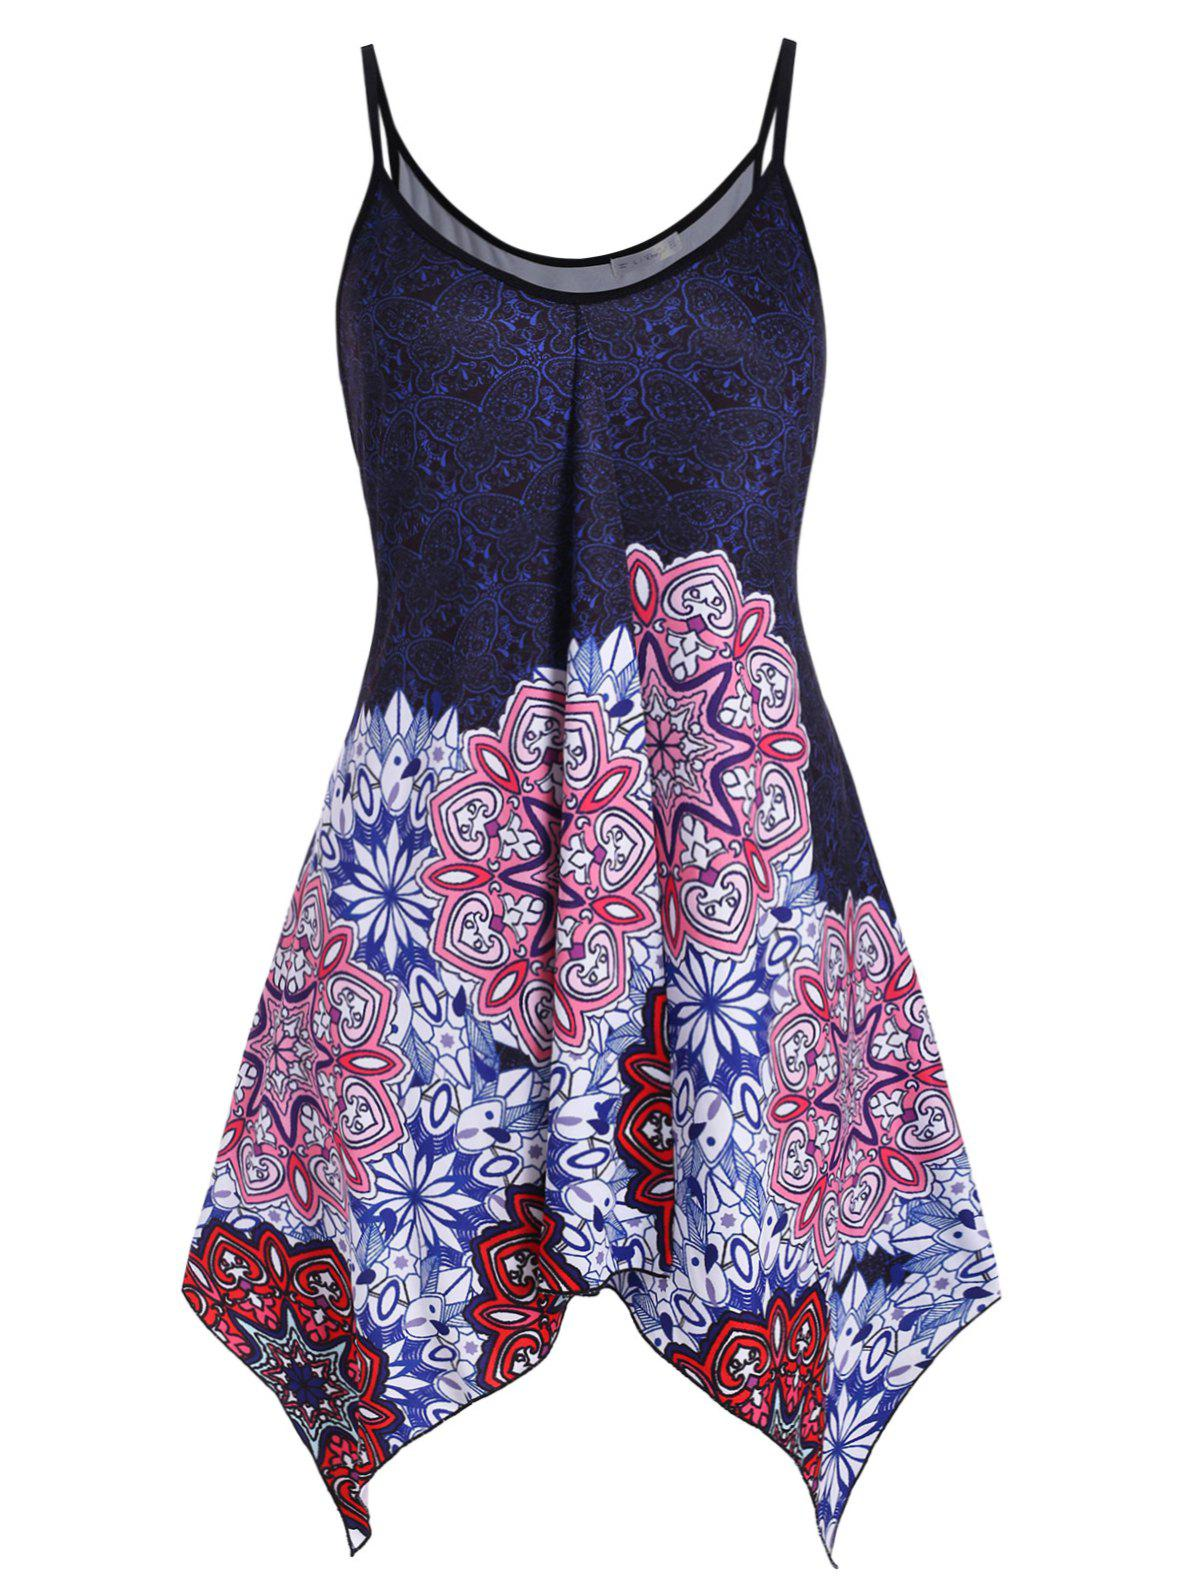 Handkerchief Longline Butterfly Printed Plus Size Cami Top фото